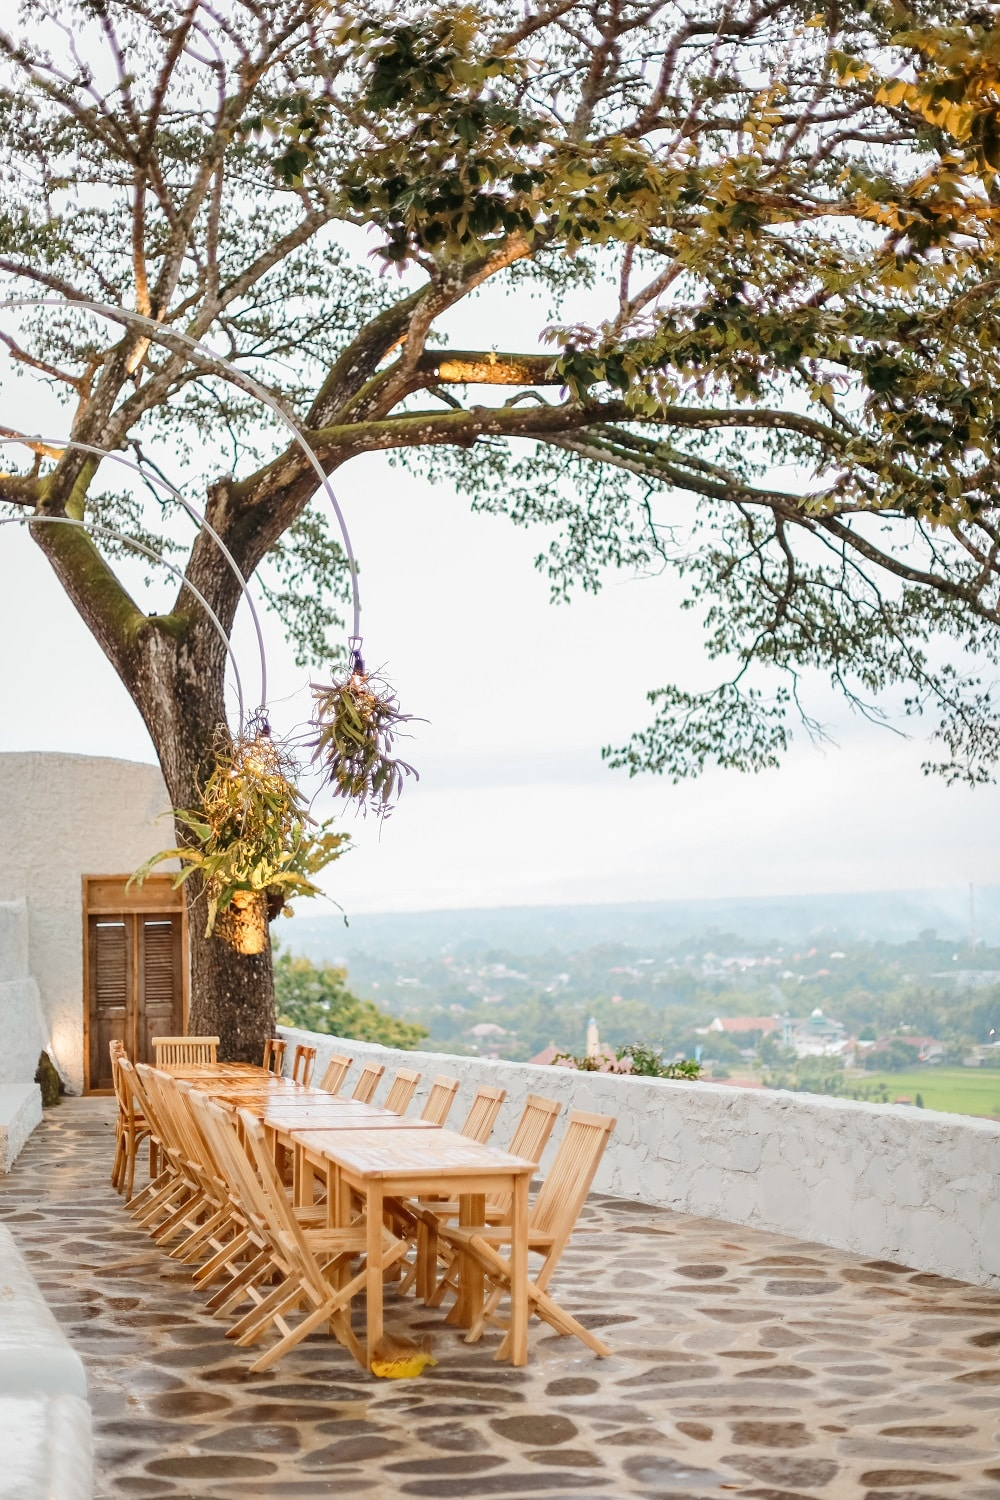 Best Wood For Outdoor Furniture 1